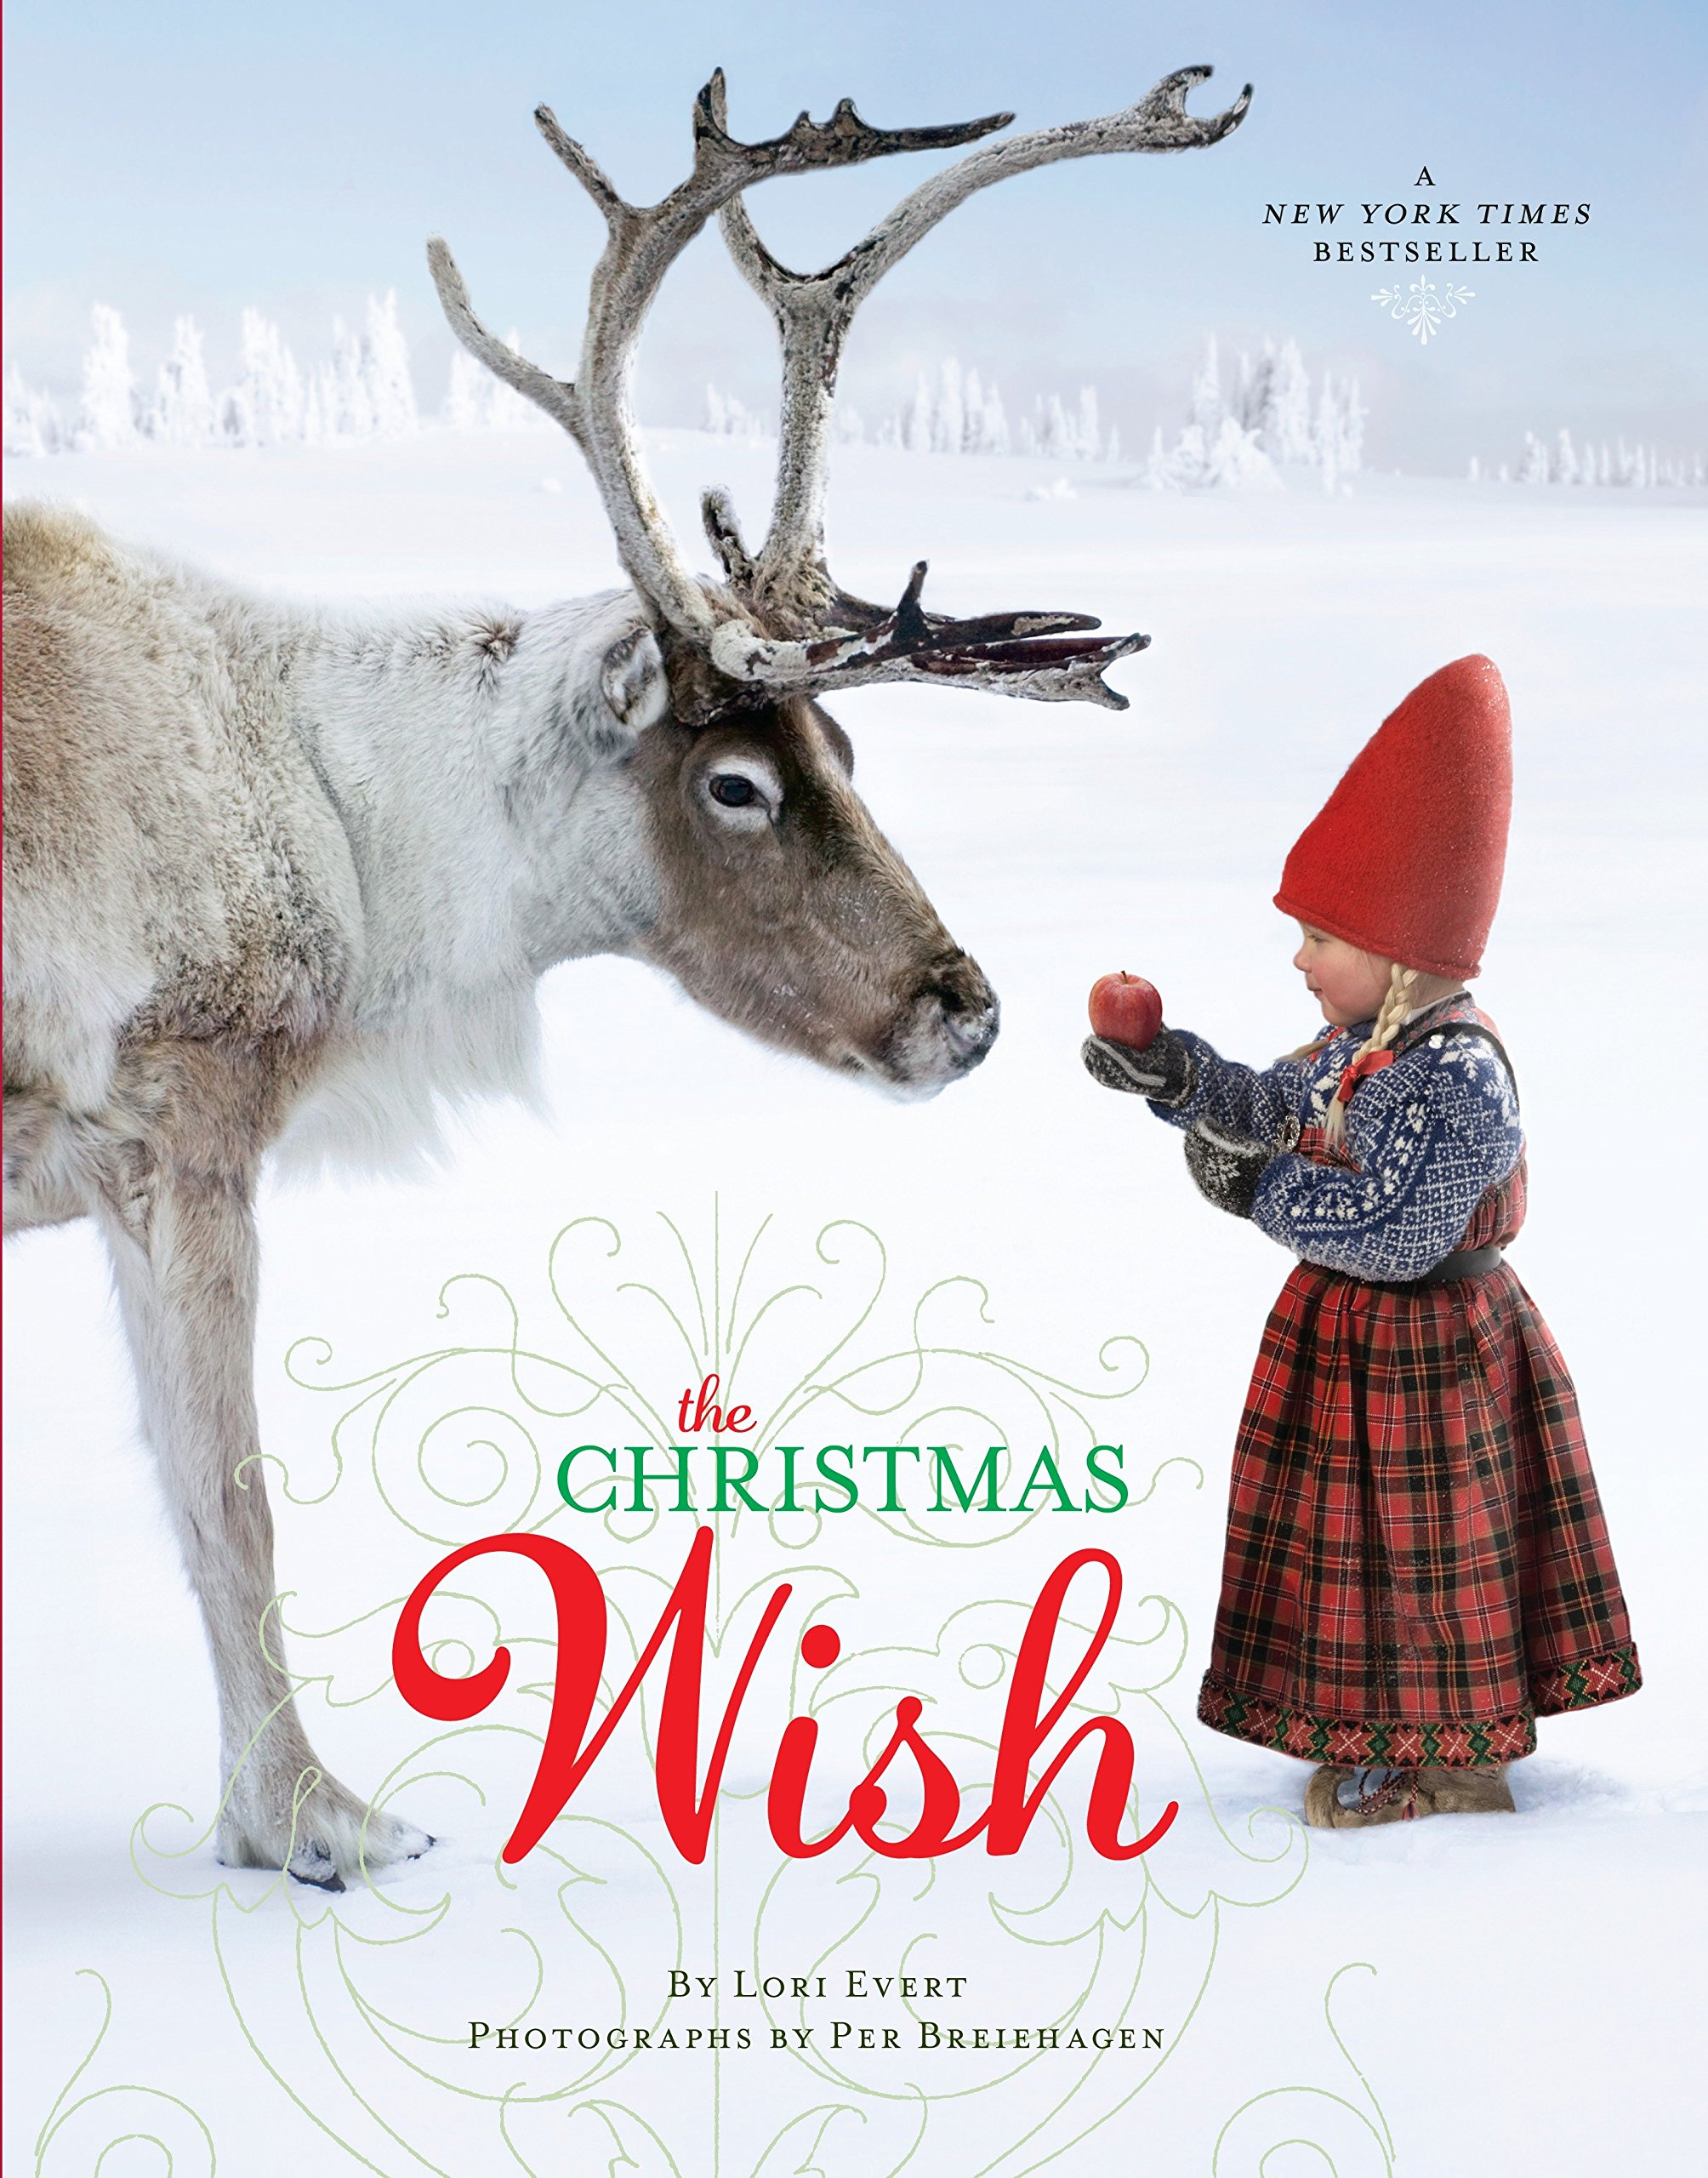 The Best Christmas Picture Books  - The Christmas Wish.jpg